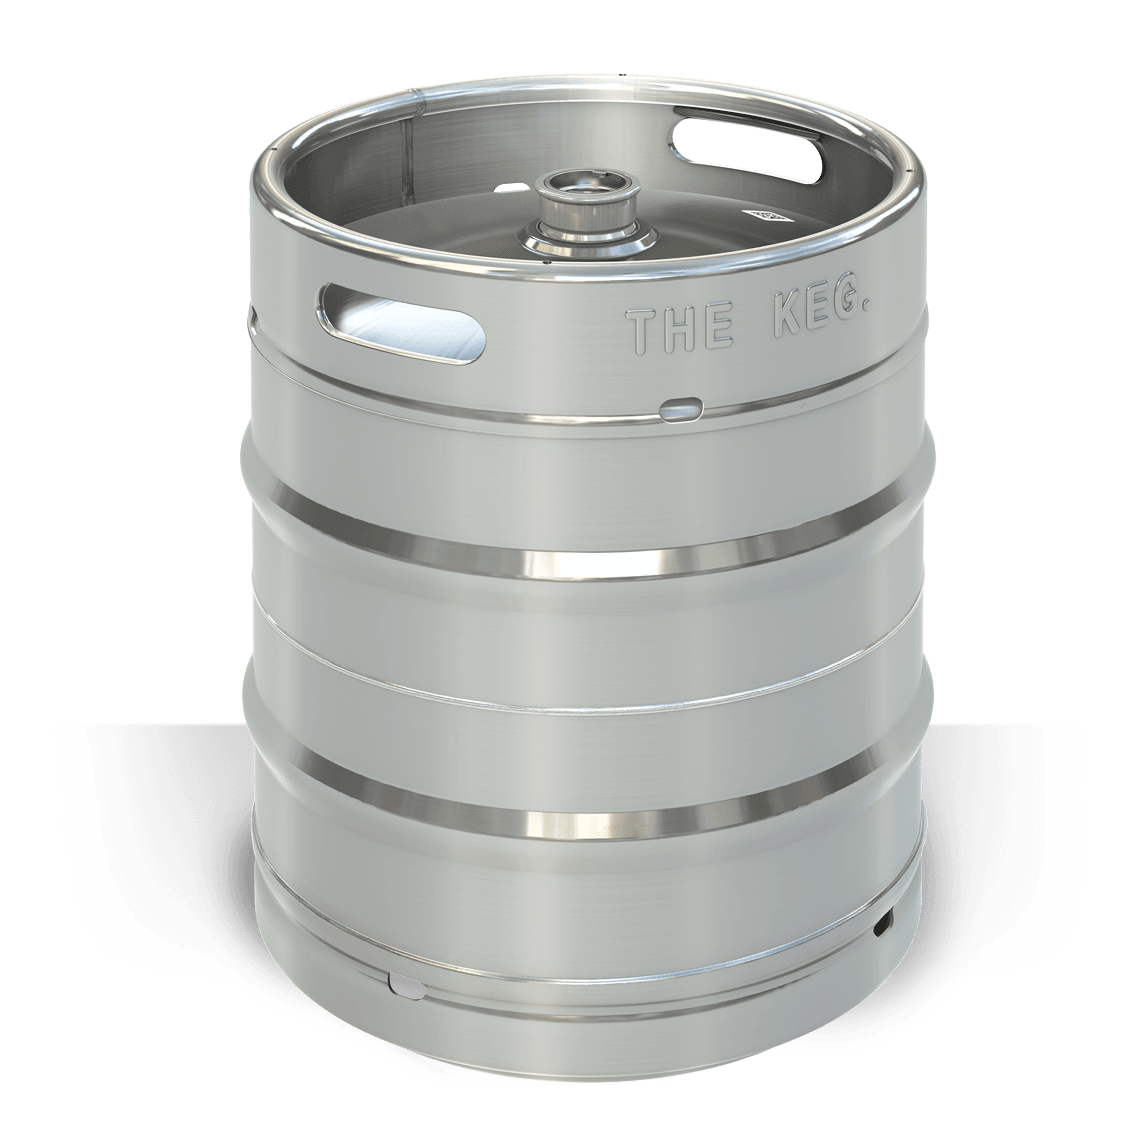 how to make a still out of a beer keg